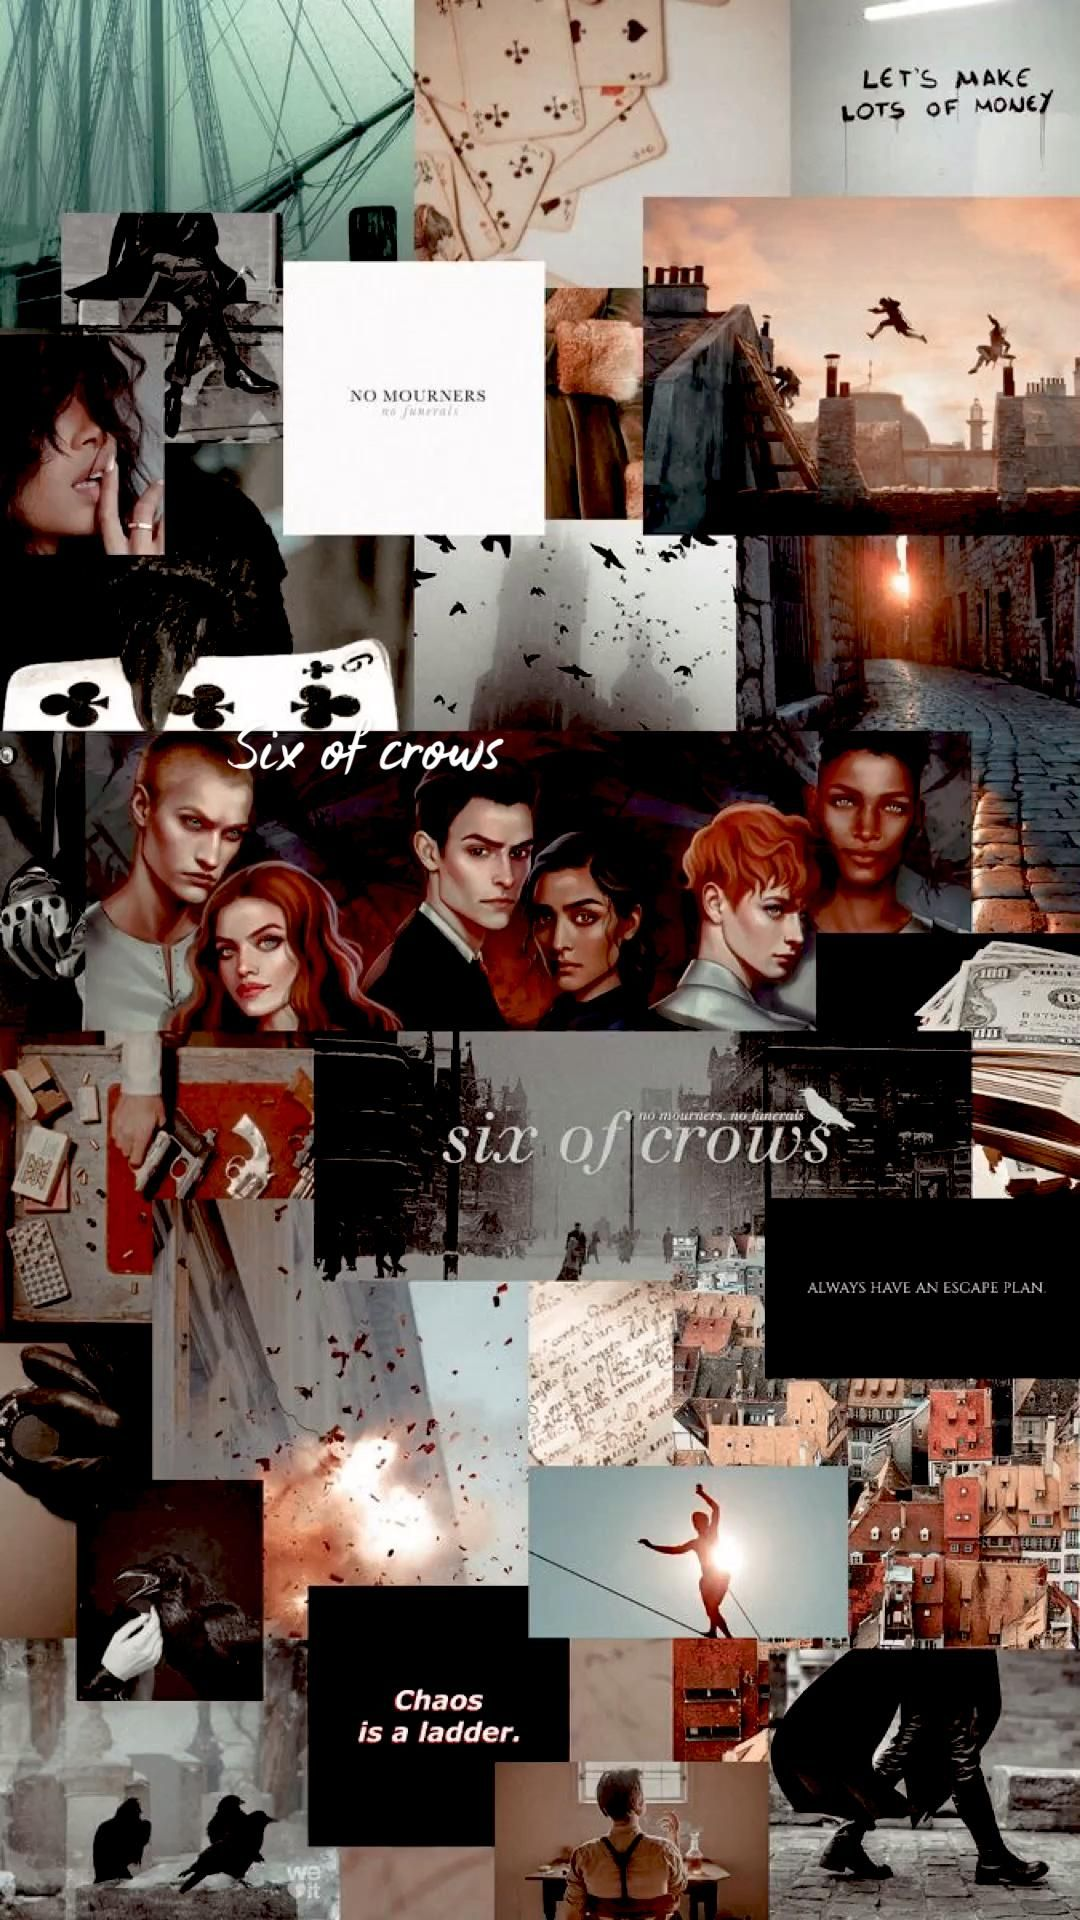 Six of crows/ Throne of Glass aesthetic